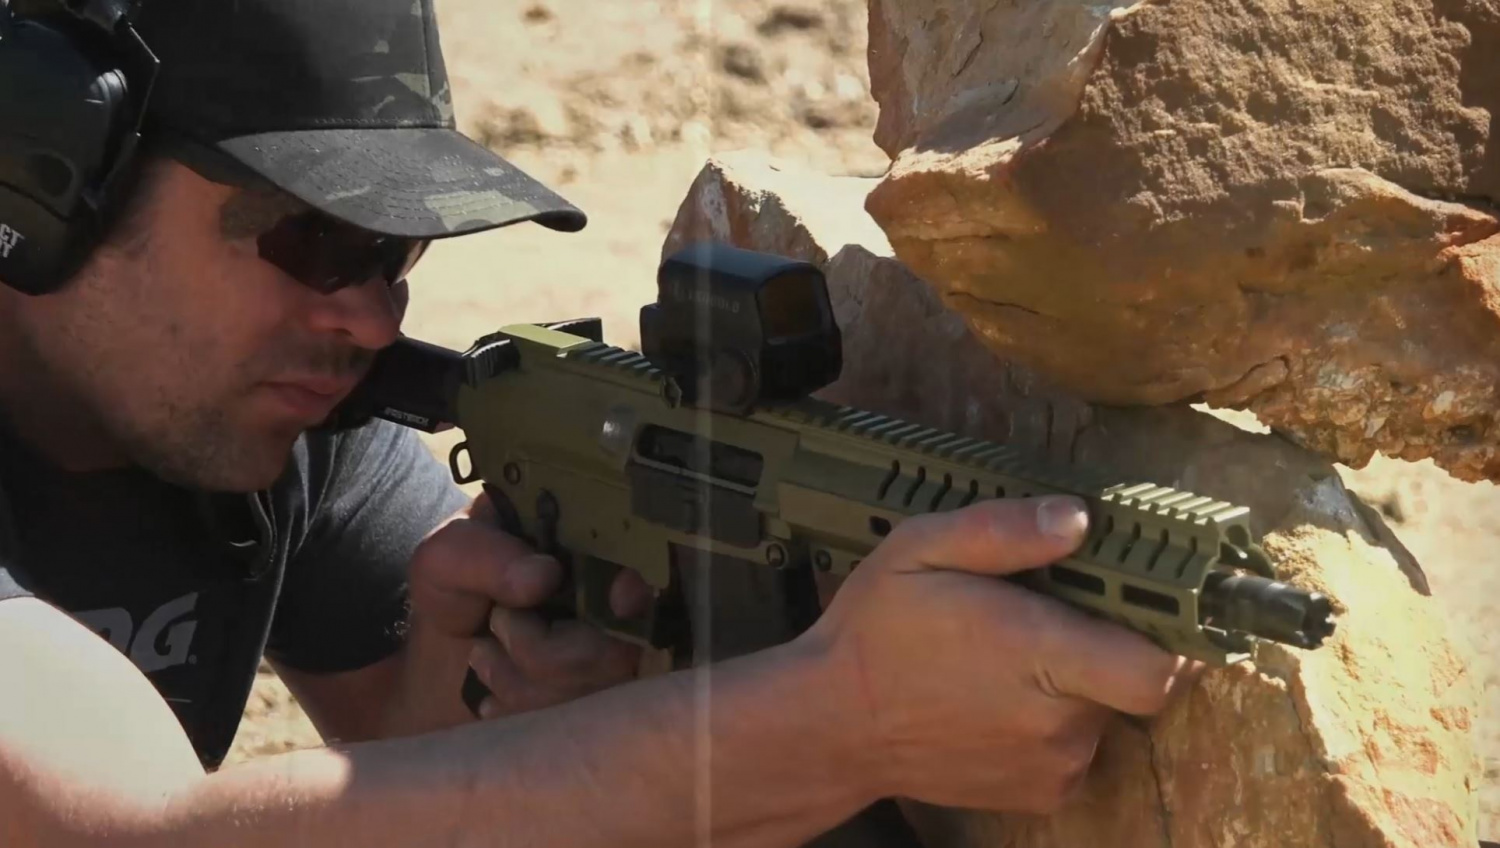 """The all New 10.5"""" Banshee 300 Mk4 5.56mm Pistol from CMMG"""